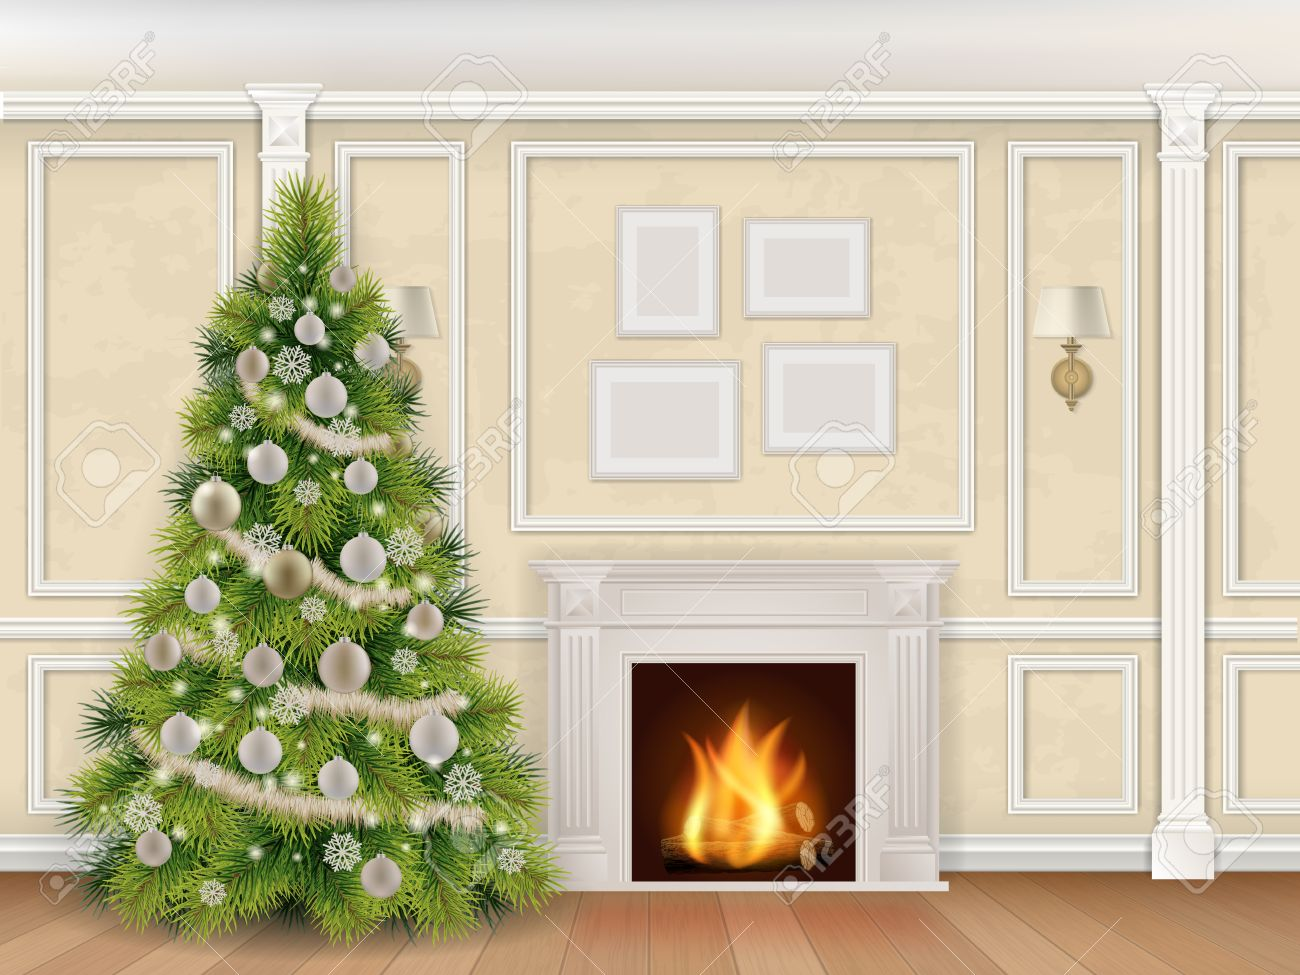 Luxury Interior Wall With Christmas Tree Fireplace And Pilasters ...